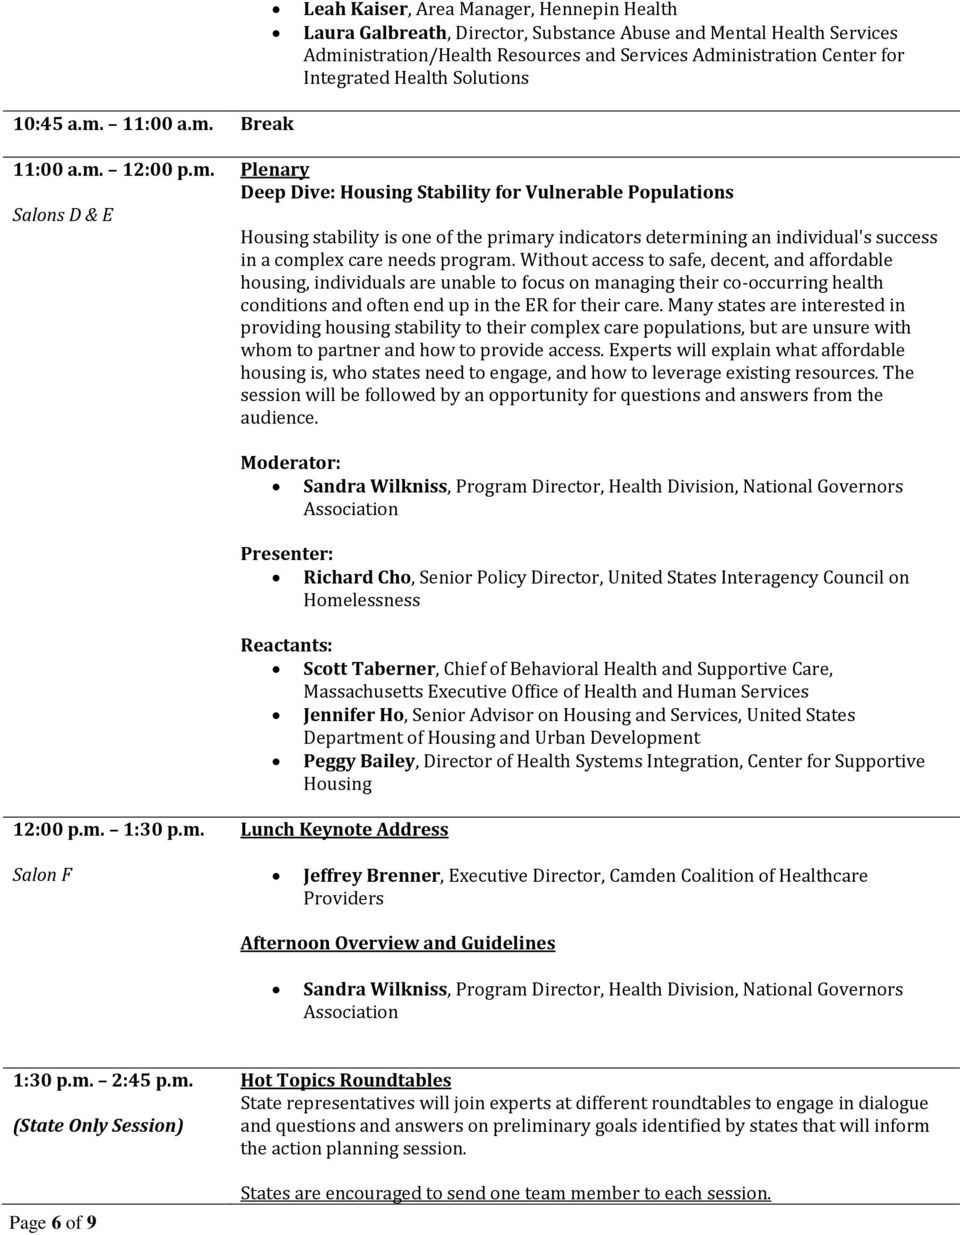 11:00 a.m. Break 11:00 a.m. 12:00 p.m. Plenary Deep Dive: Housing Stability for Vulnerable Populations Housing stability is one of the primary indicators determining an individual's success in a complex care needs program.